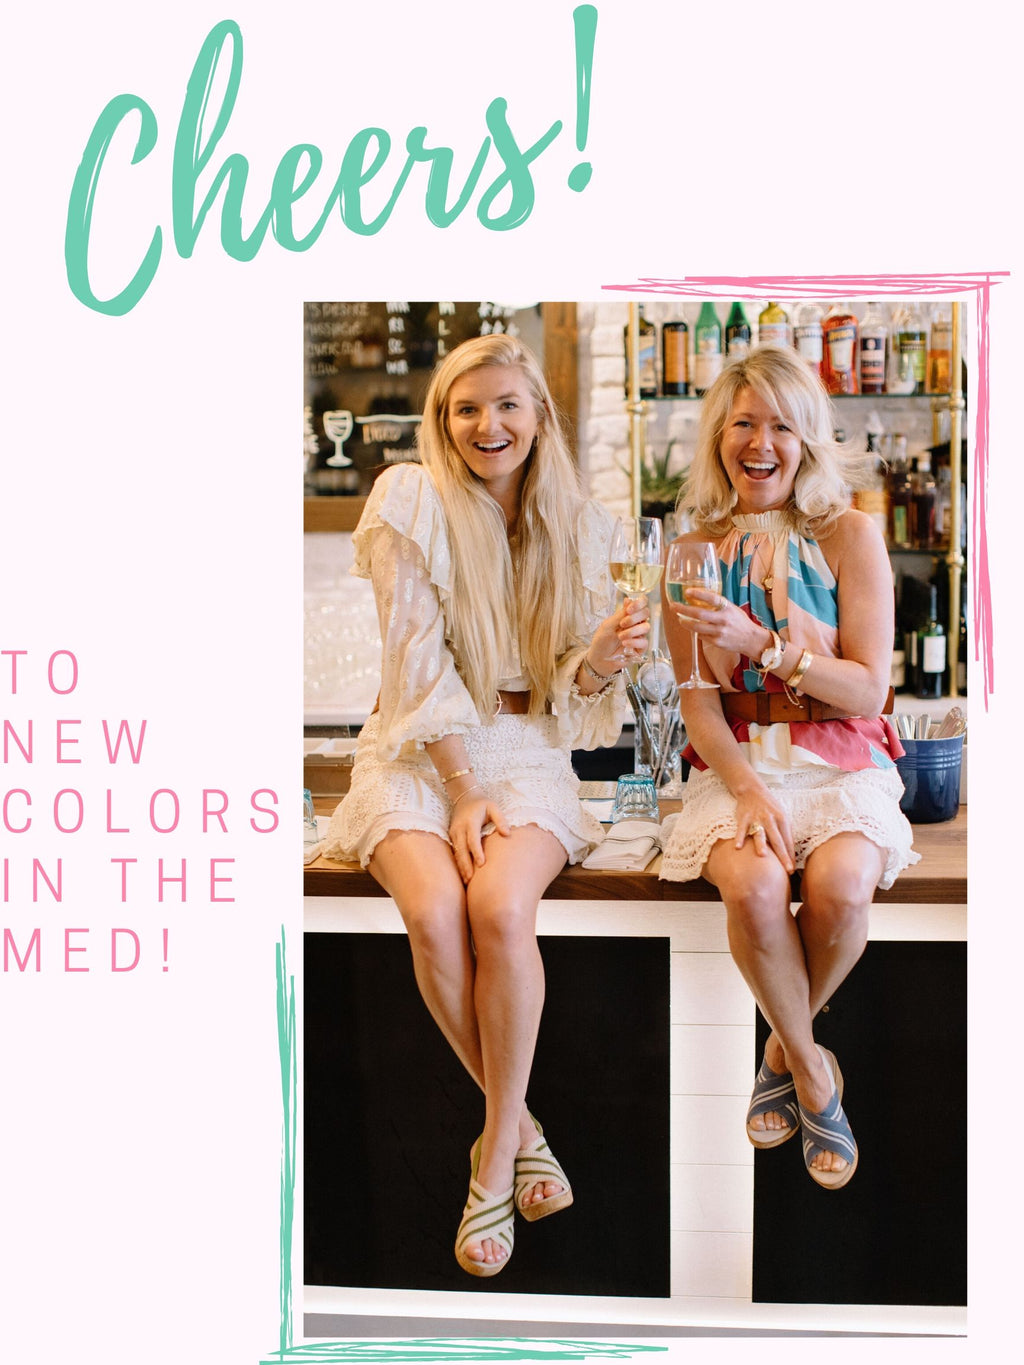 Cheers to the MED in Fresh Colors! 🥂